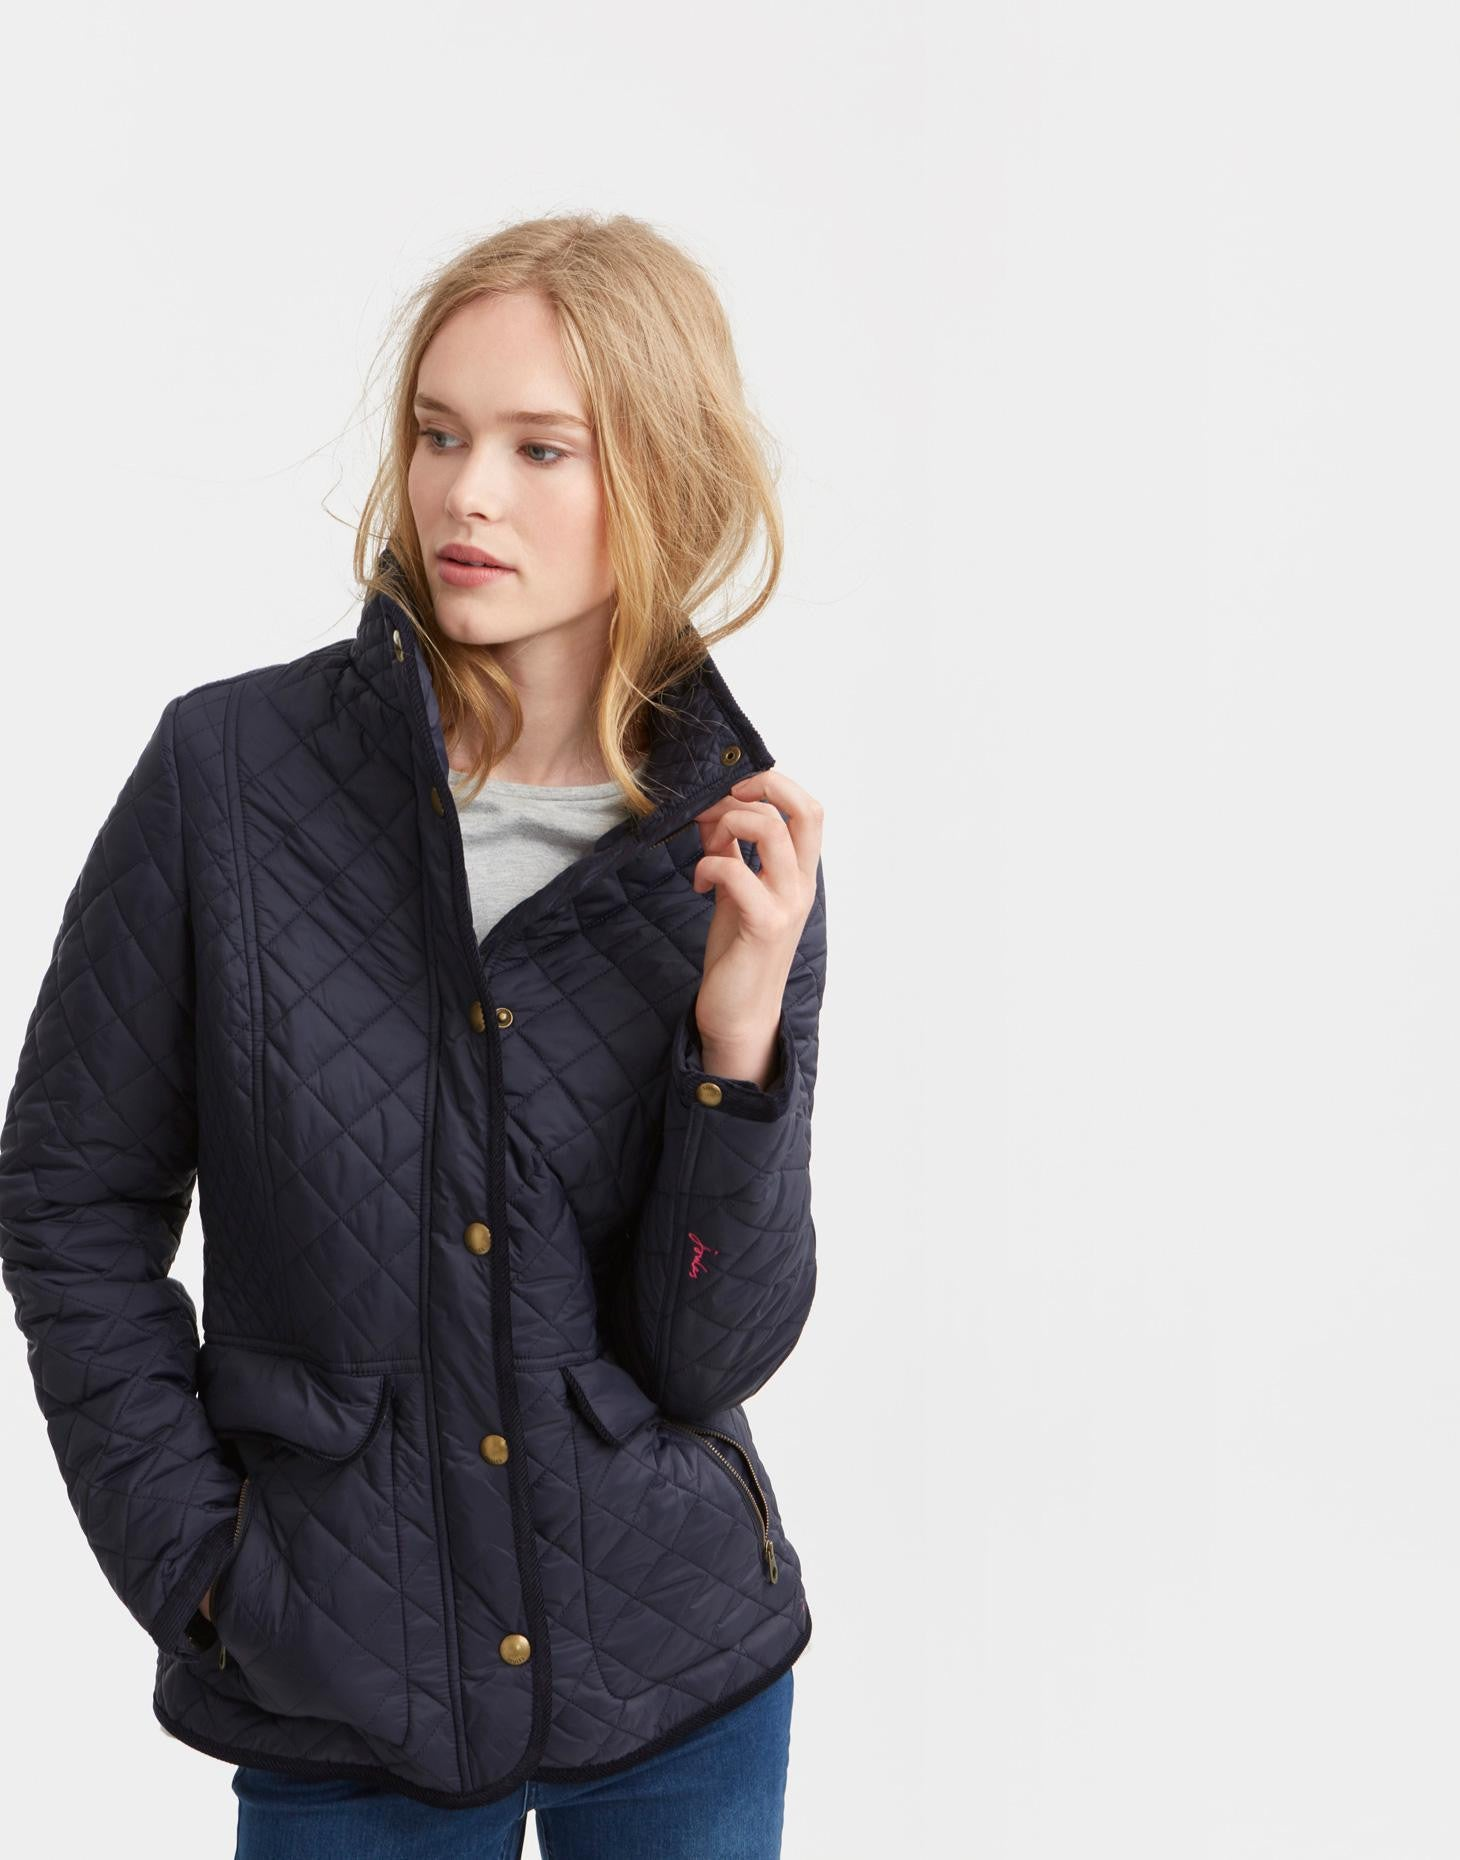 Joules Newdale Jacket - Navy by Joules from THE LUCKY KNOT - 1